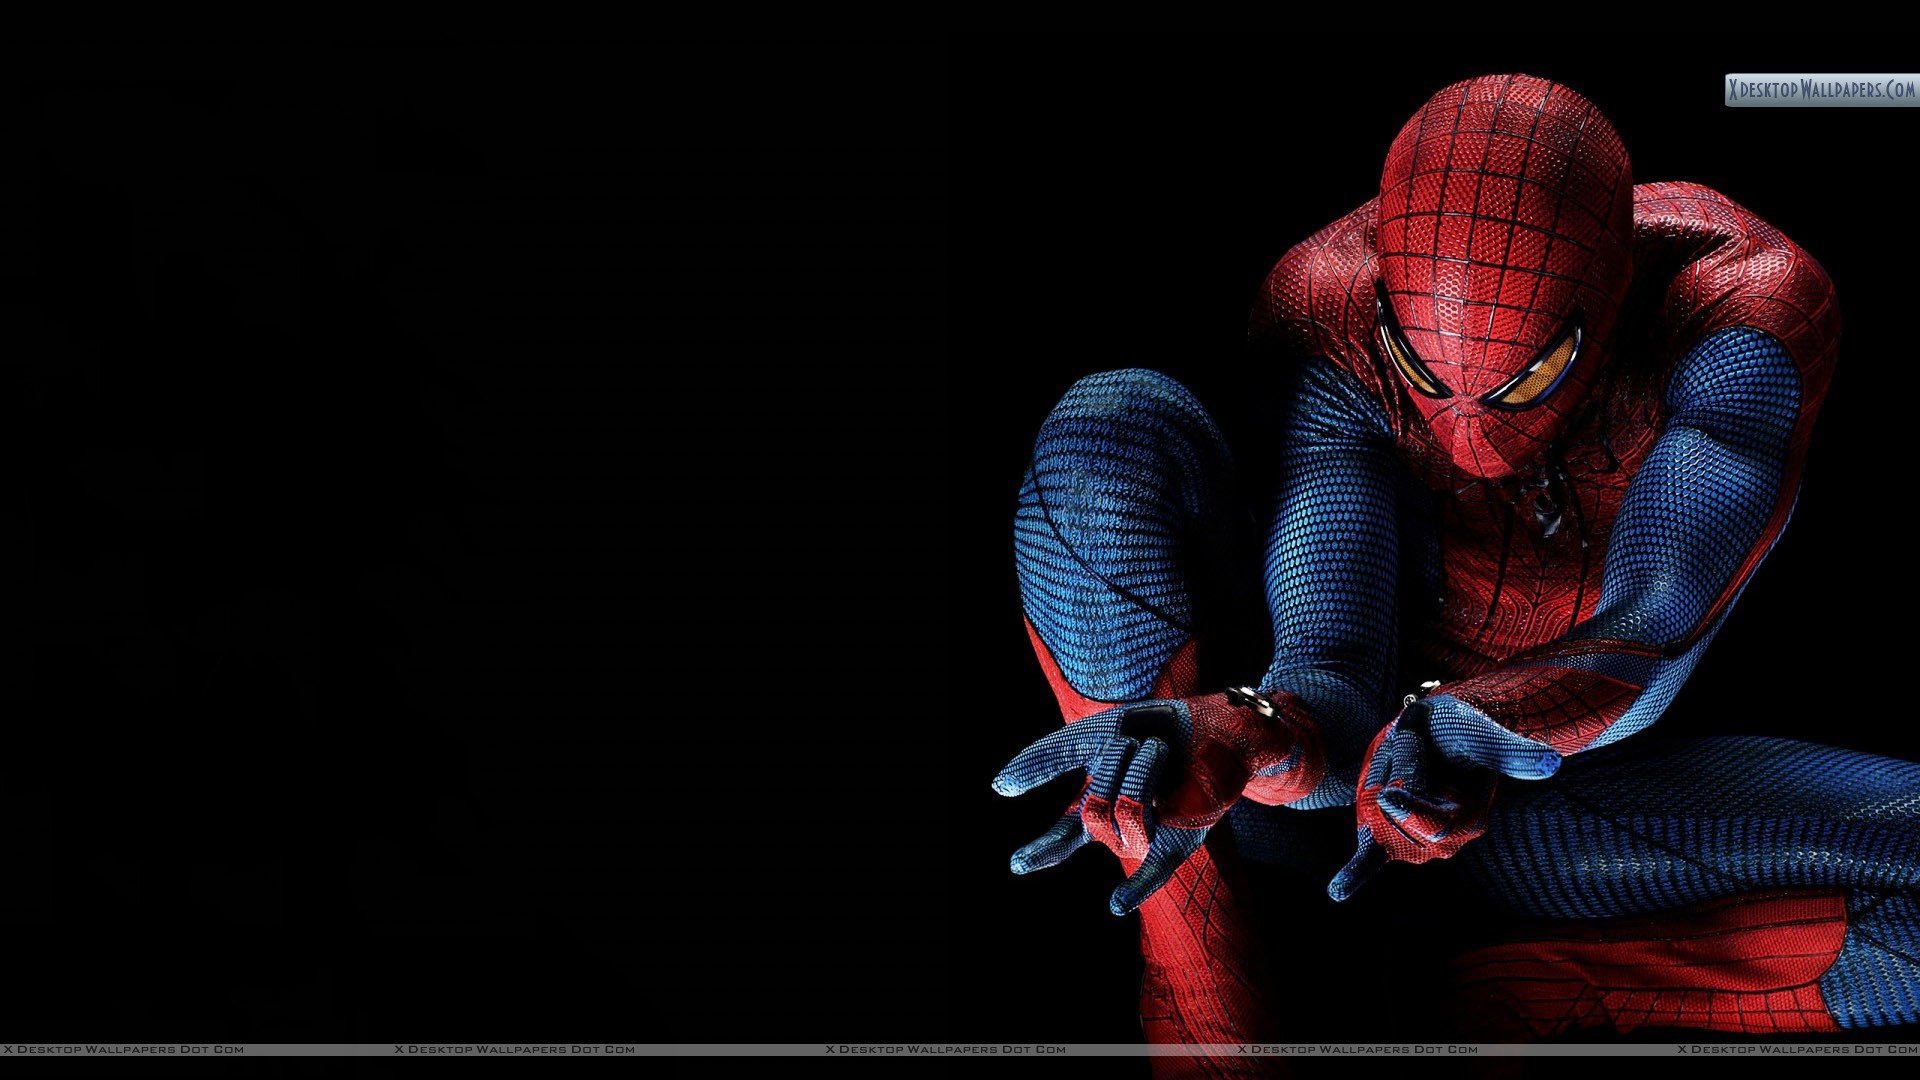 HD Wallpapers Of Spiderman 4 Group (81+)